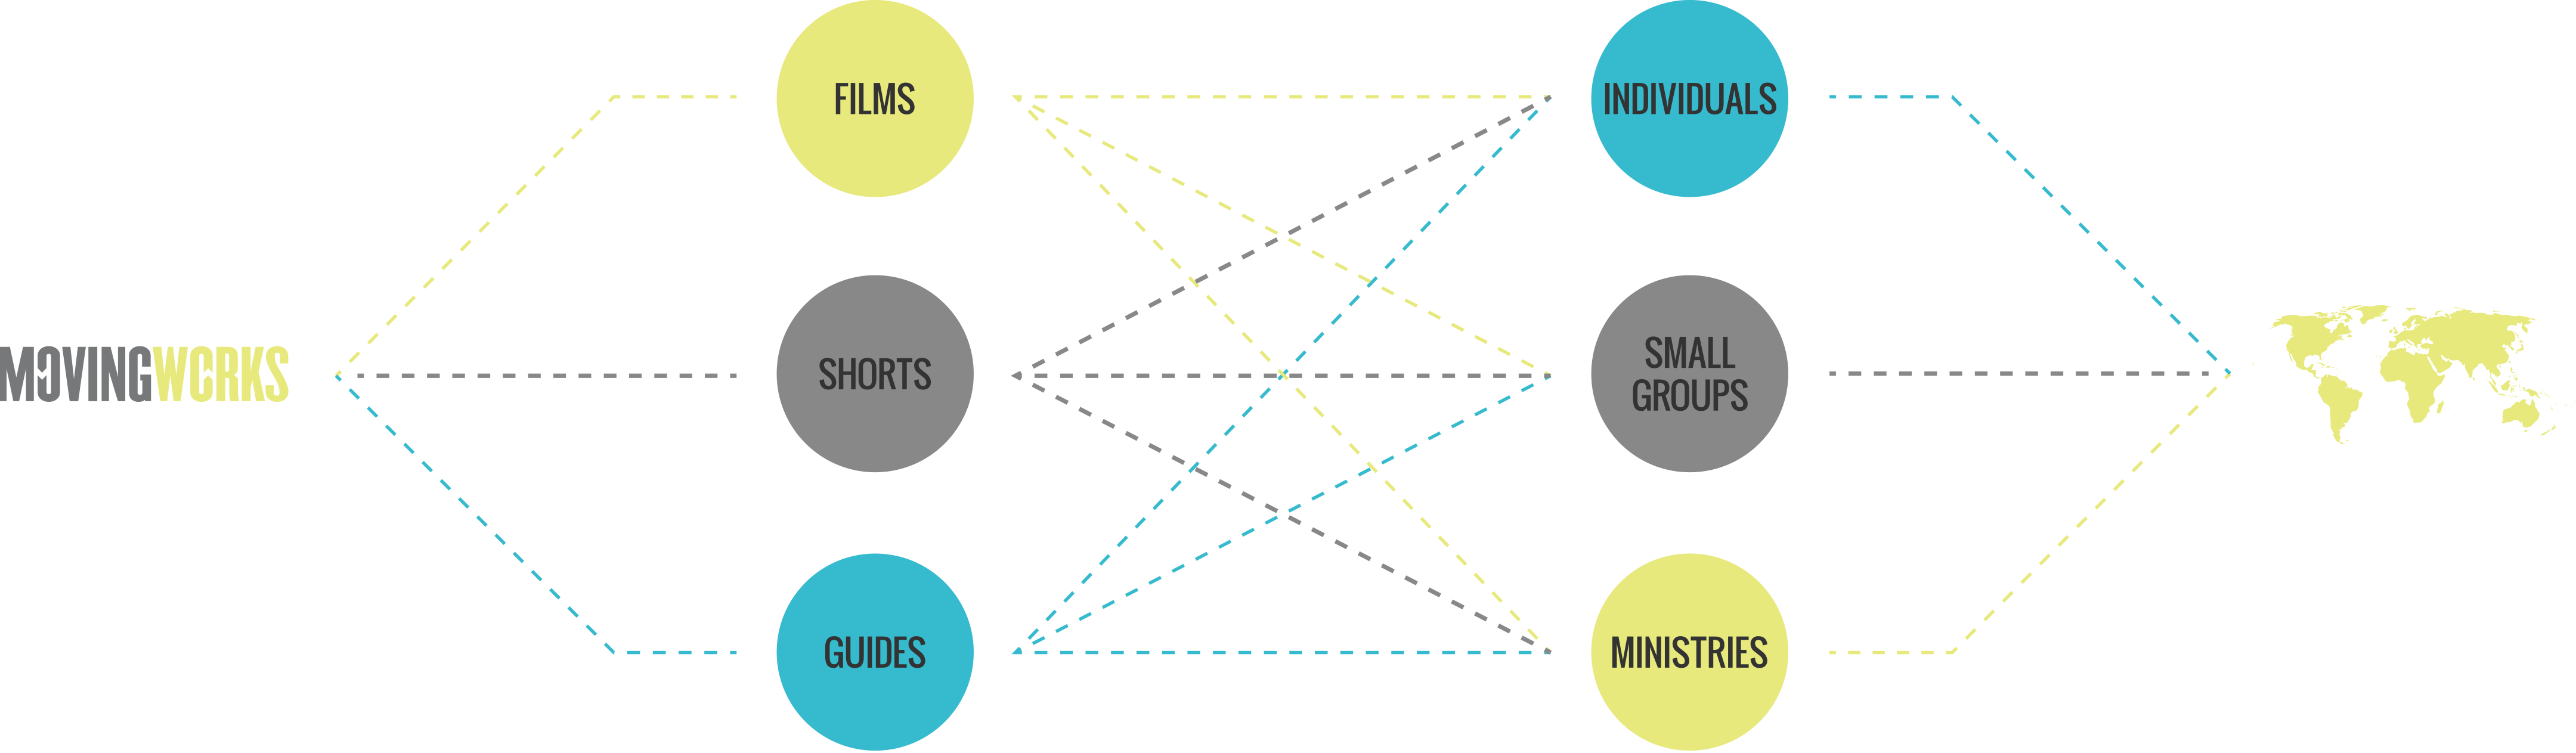 Moving Works Distribution Model